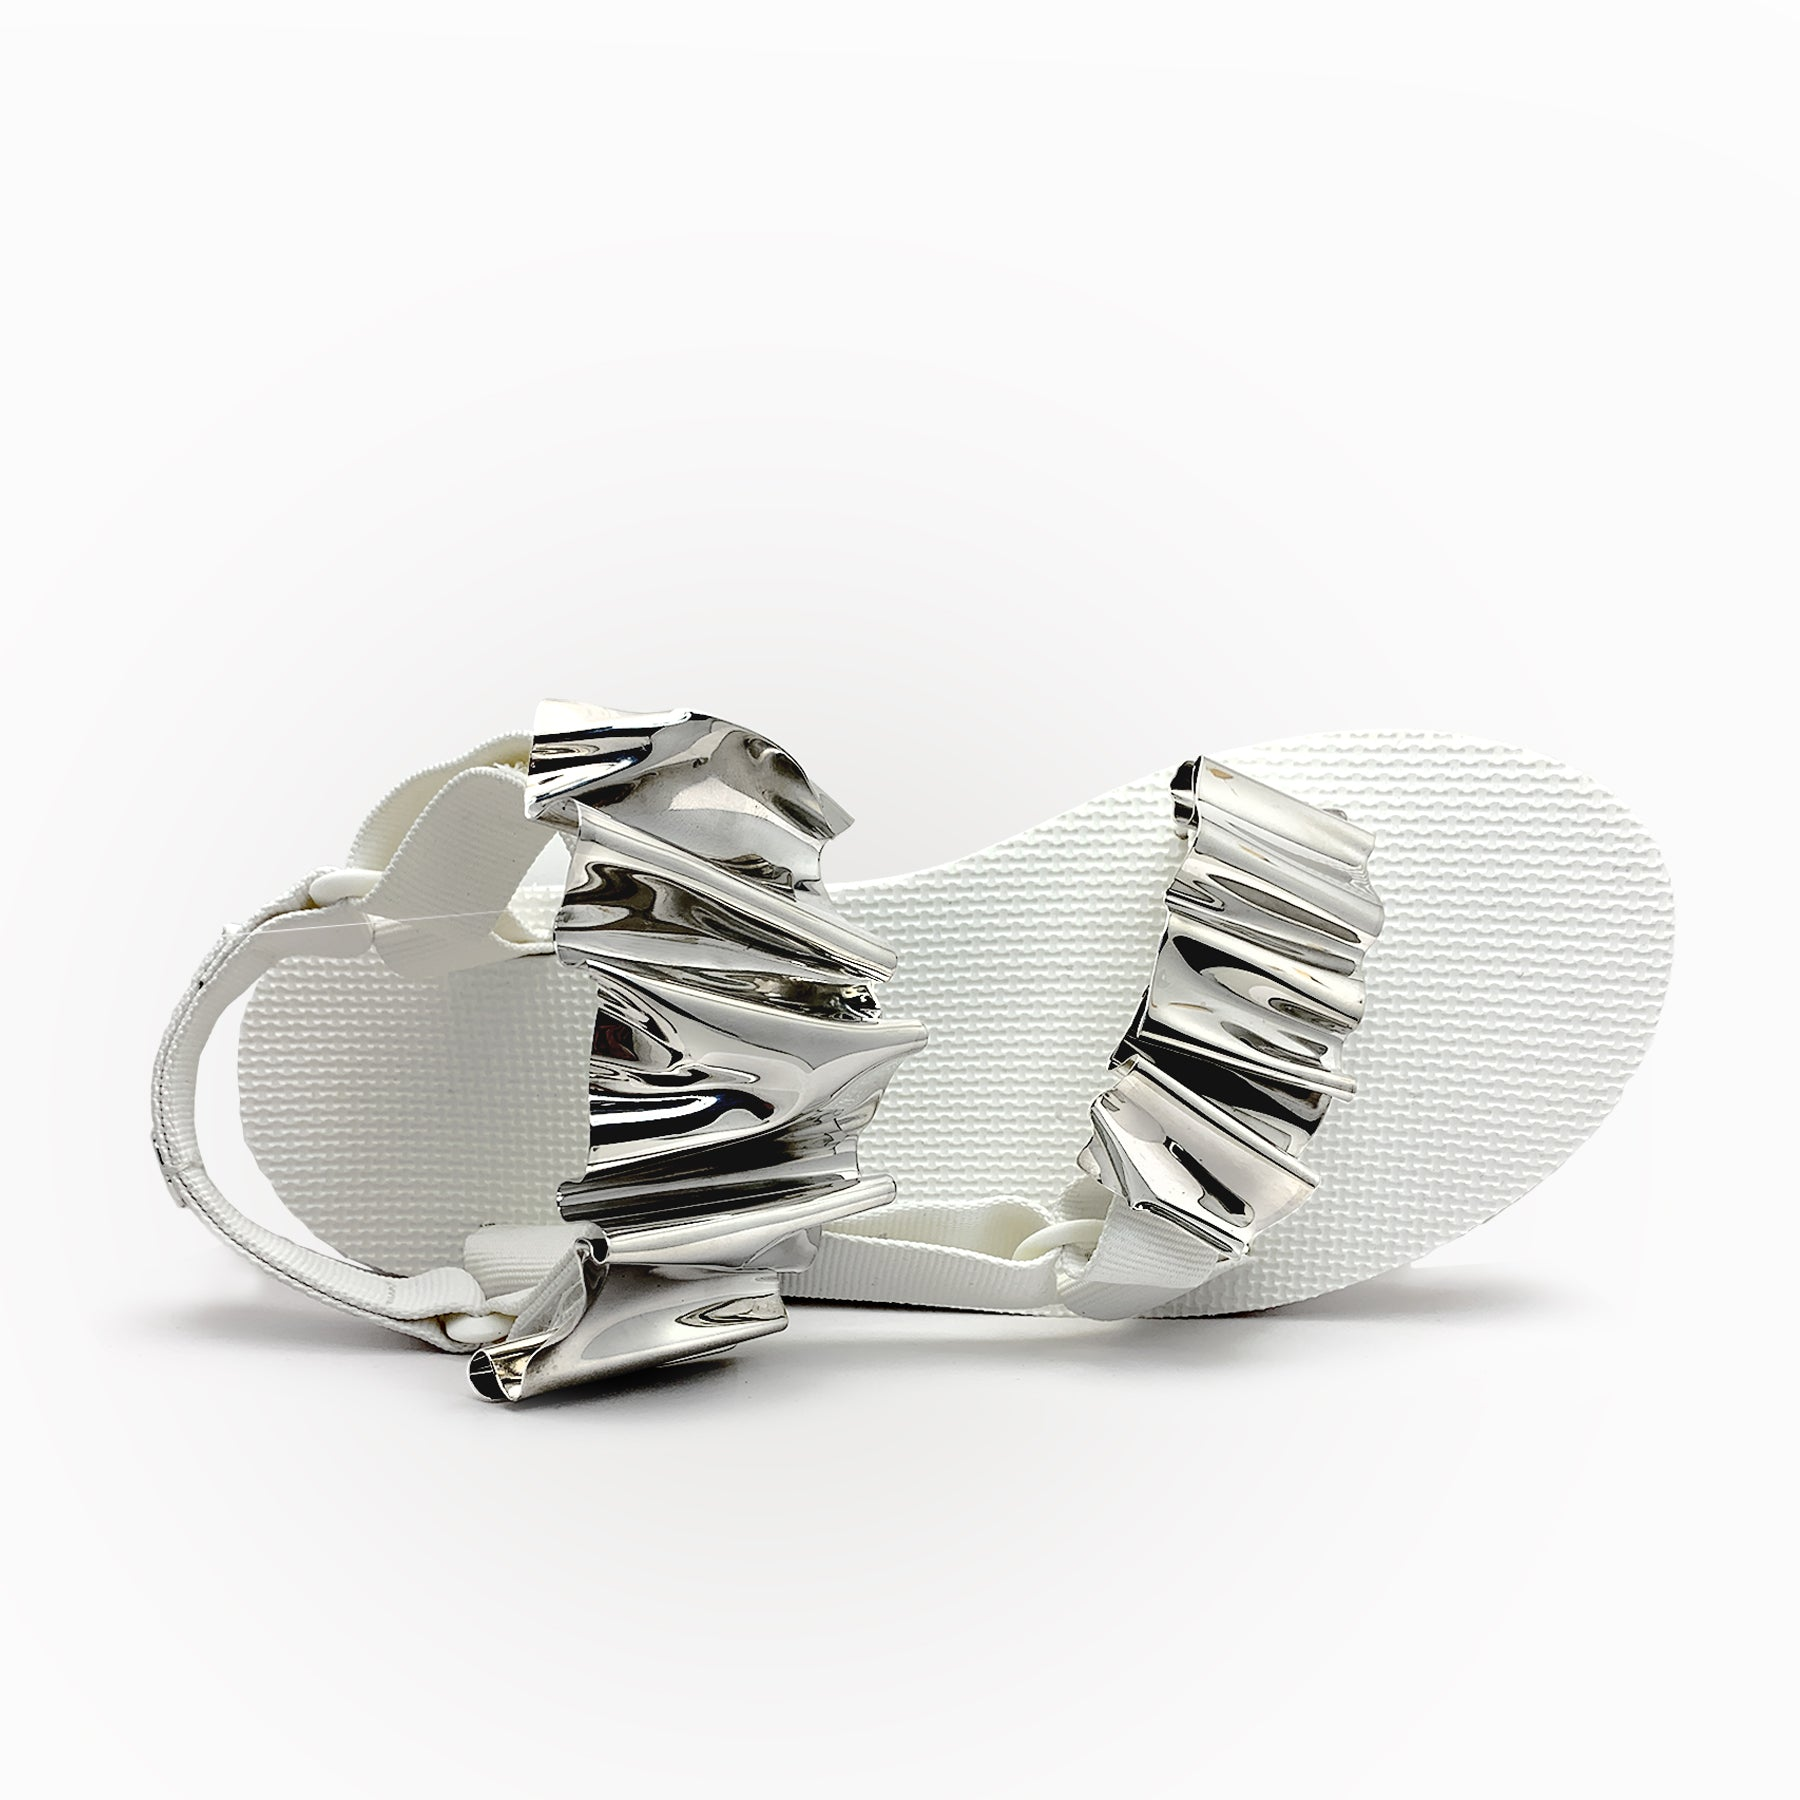 CHRISHABANA x TEVA Customized Flatform Universal Sandals in White